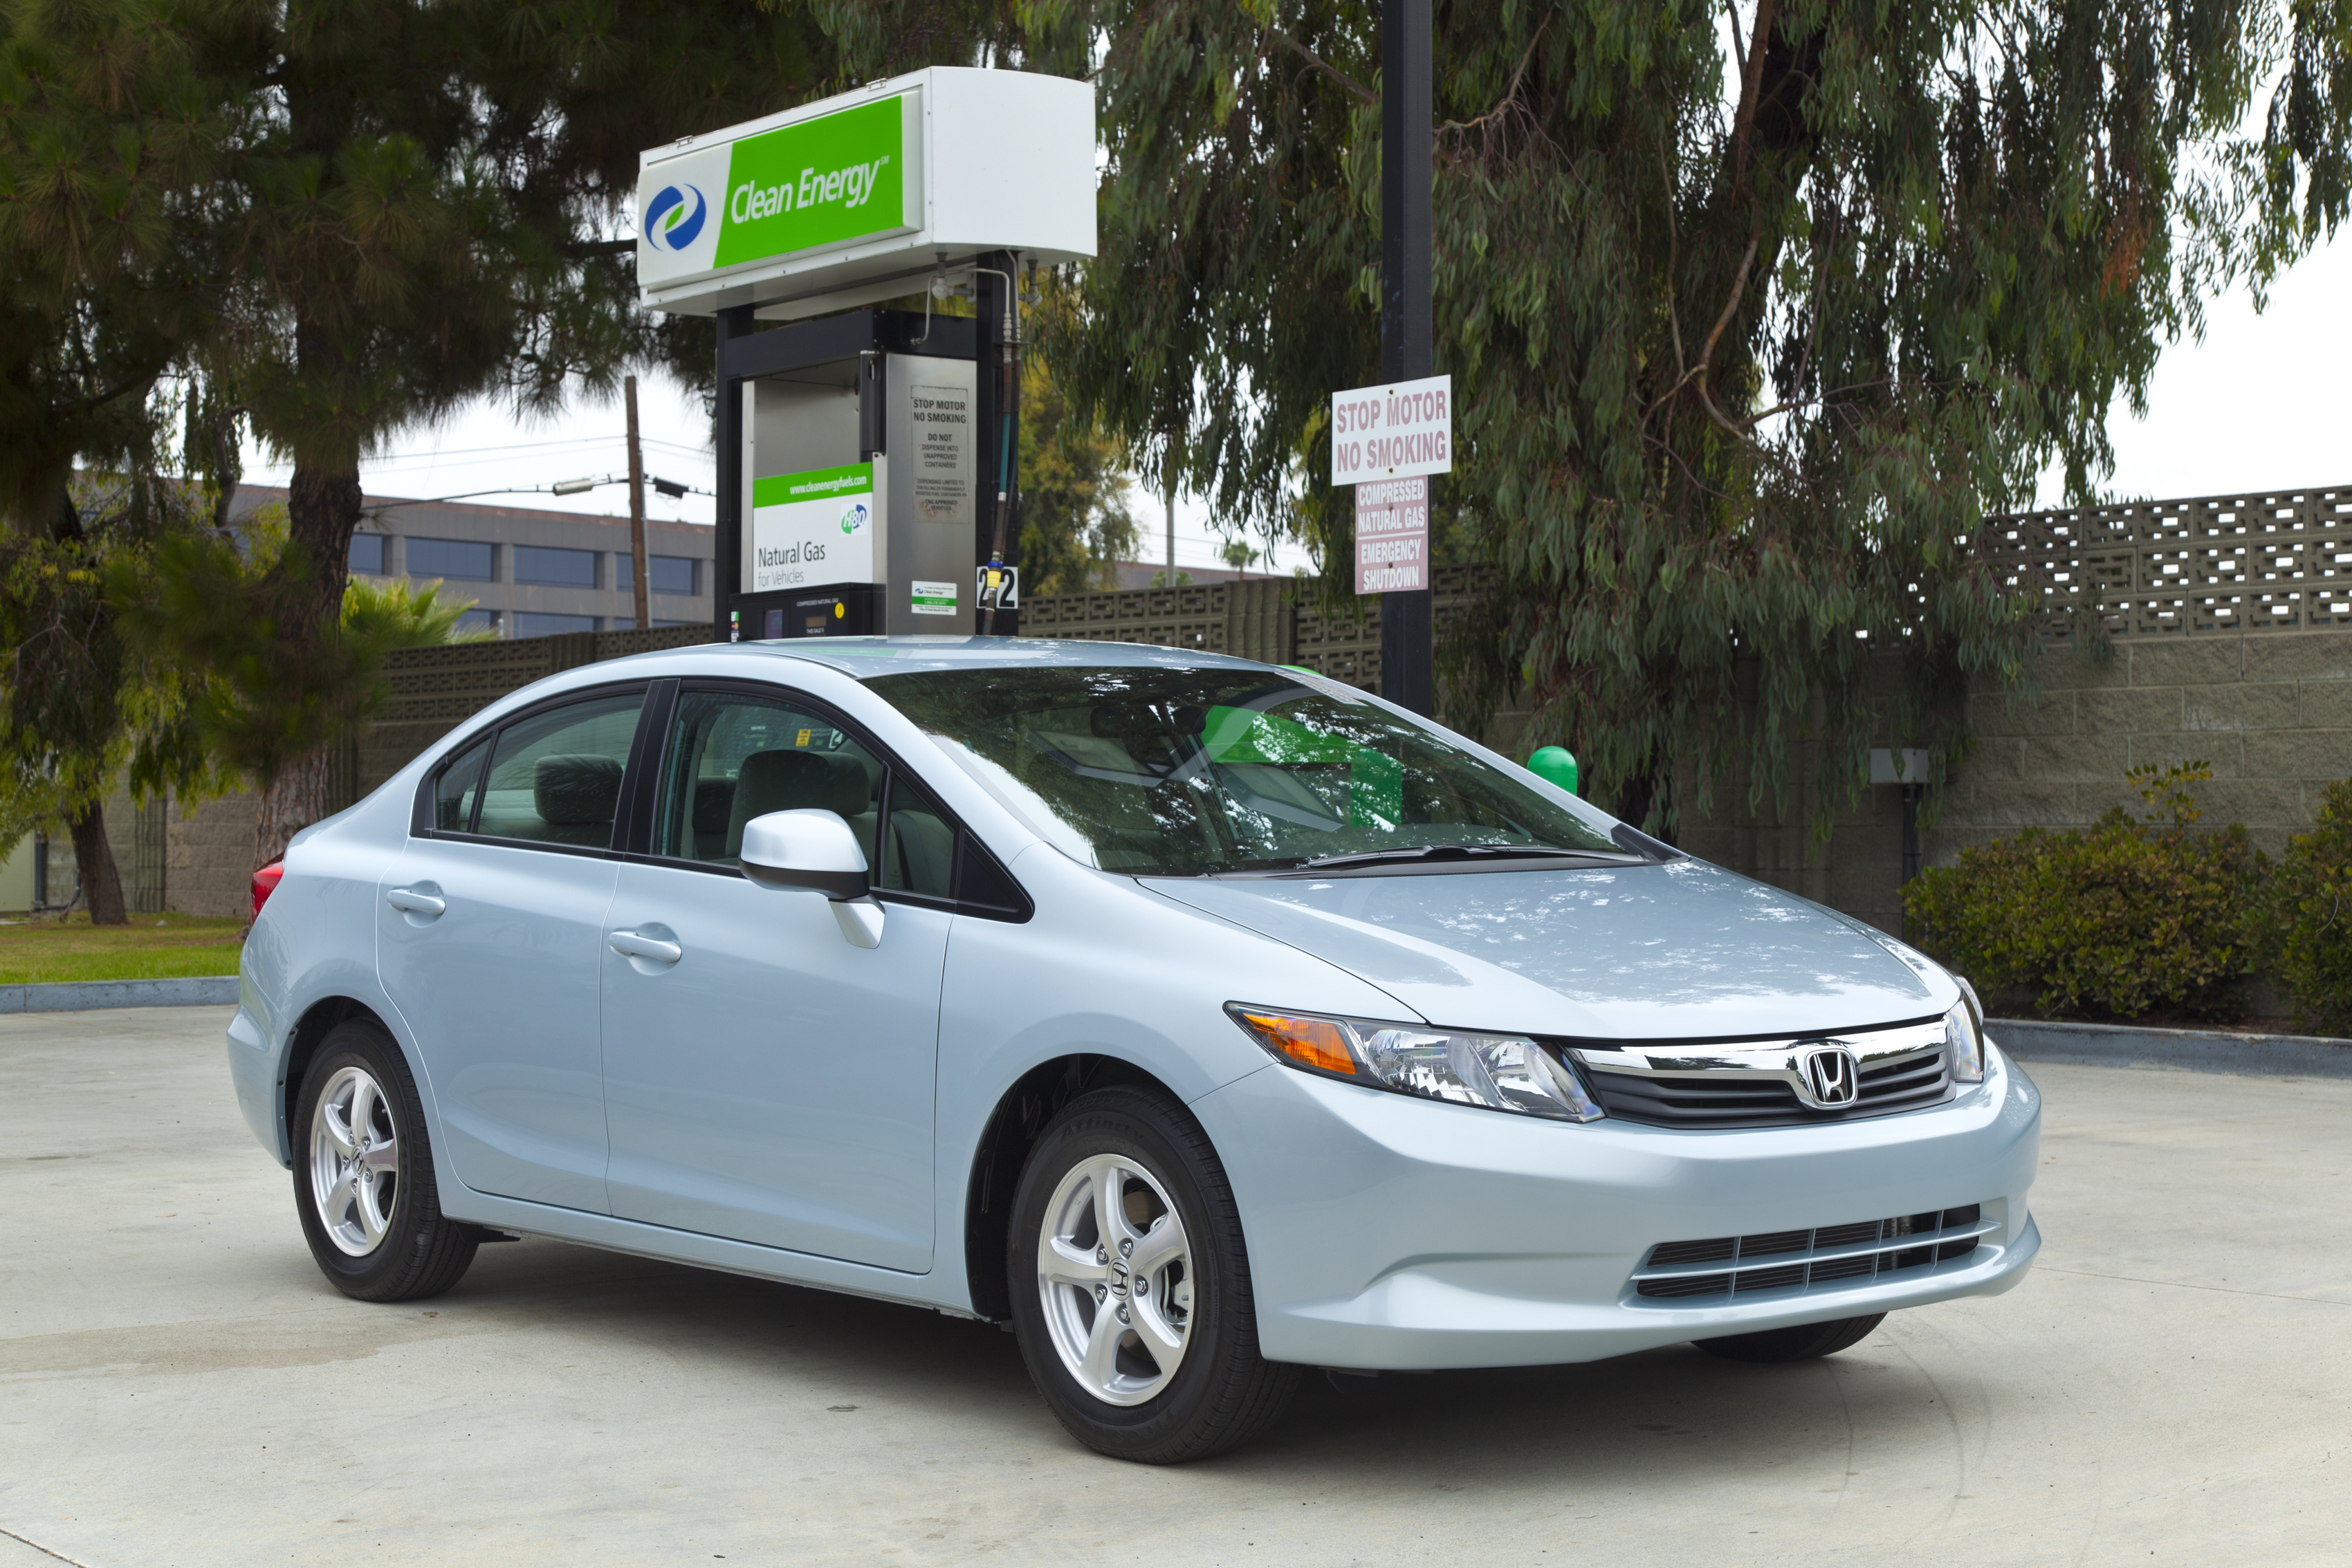 Honda Joins With Clean Energy To Provide 3 000 Fuel Cards New Civic Natural Gas Vehicle Customers